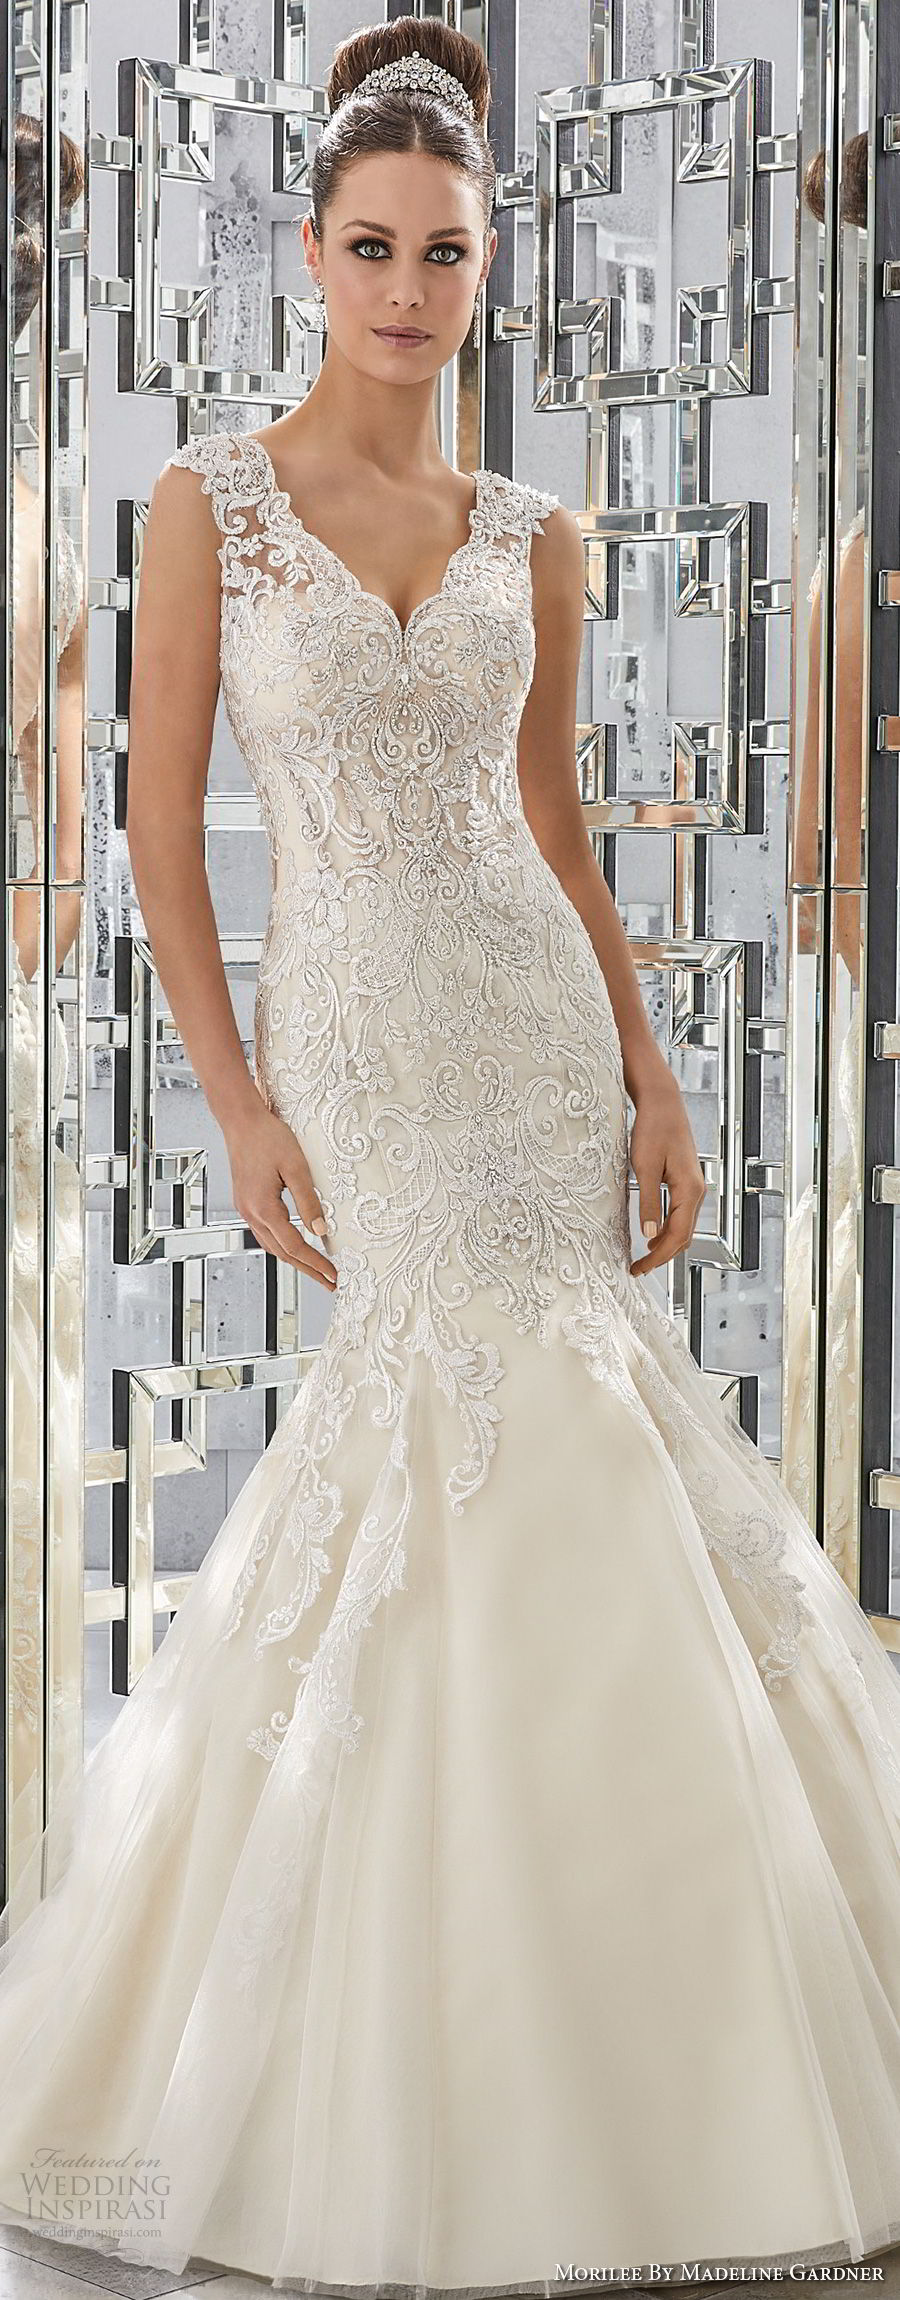 morilee fall 2017 blu bridal sleeveless thick lace strap v neck heavily embellished bodice elegant mermaid wedding dress sheer button back chapel train (68) mv